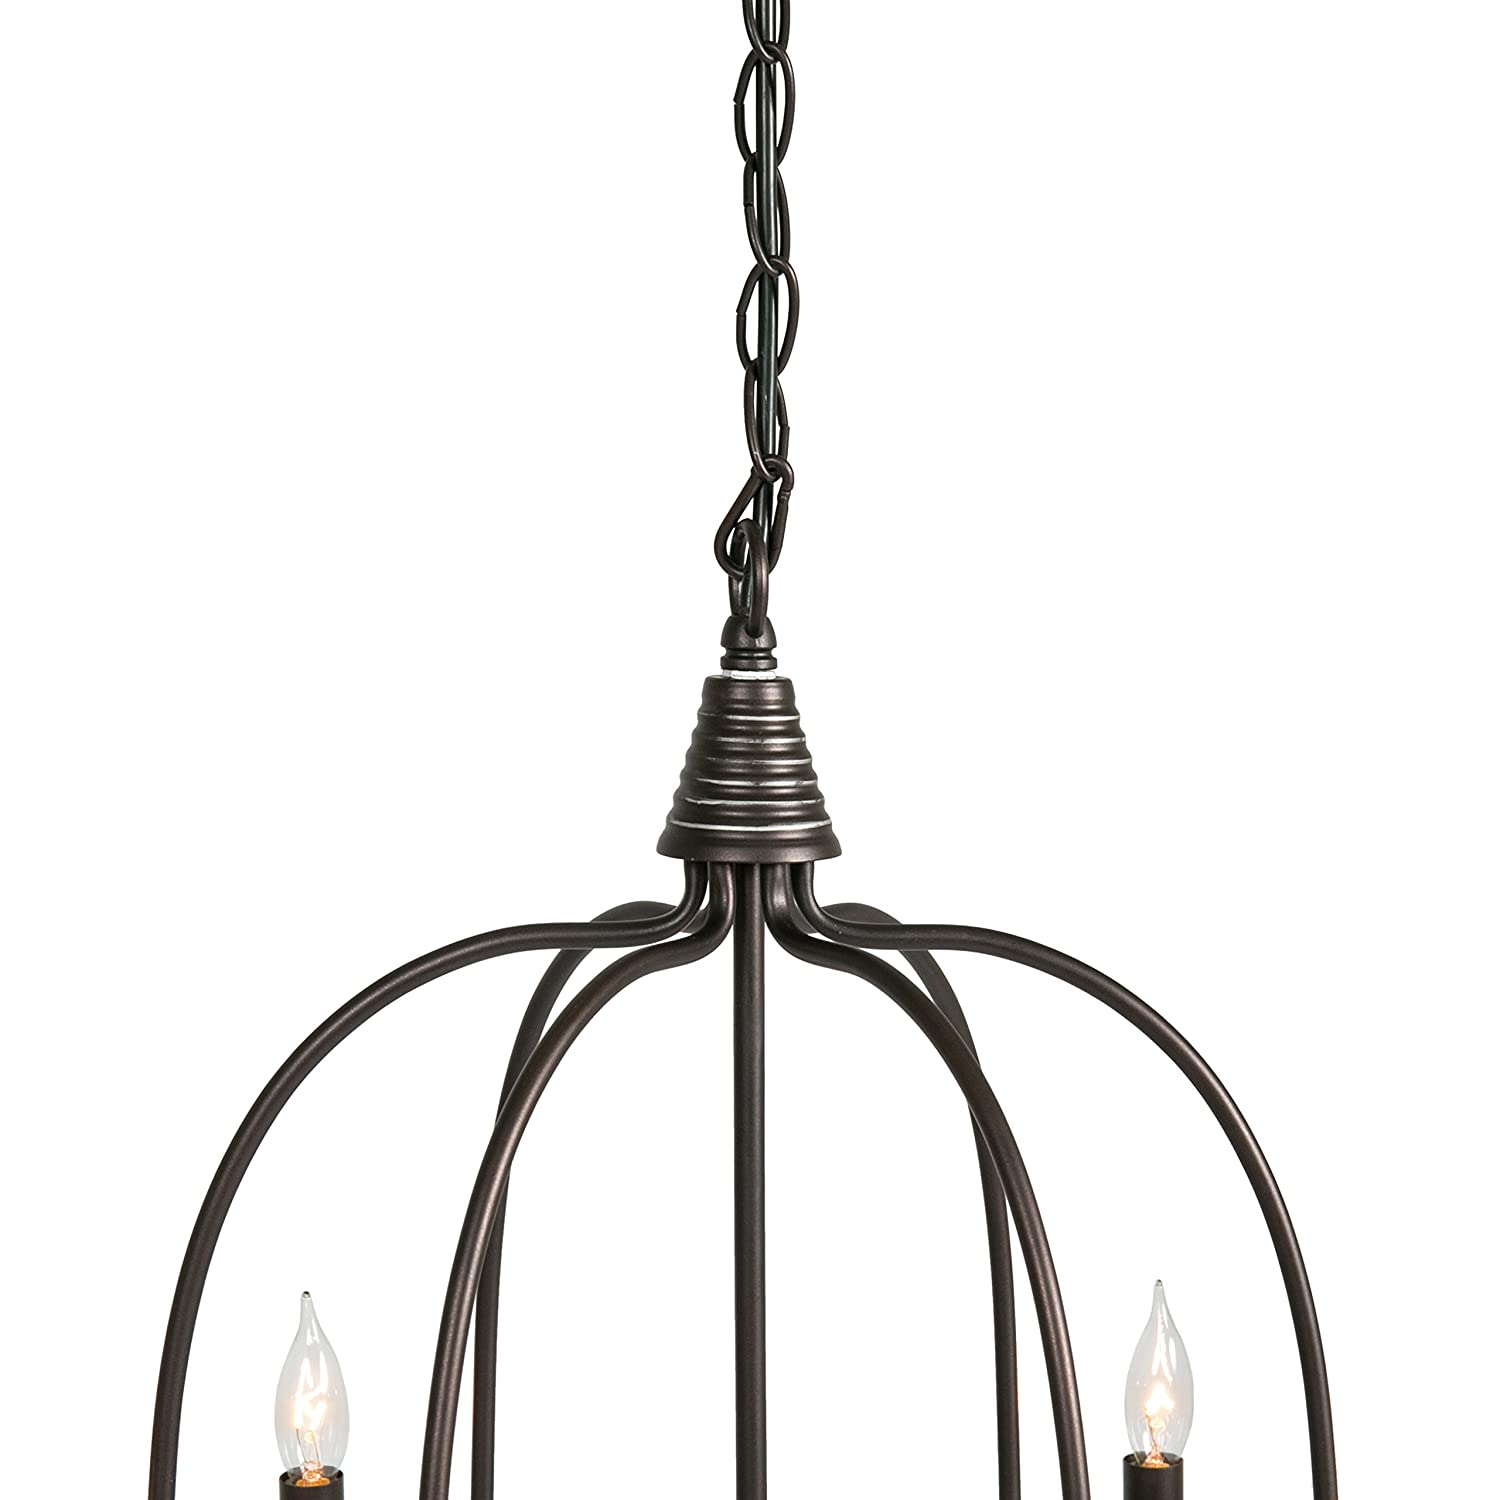 Best Choice Products 25in 6-Light Candle Chandelier Hanging Lighting Fixture for Living Room, Kitchen, Foyer w 41in Chain – Bronze